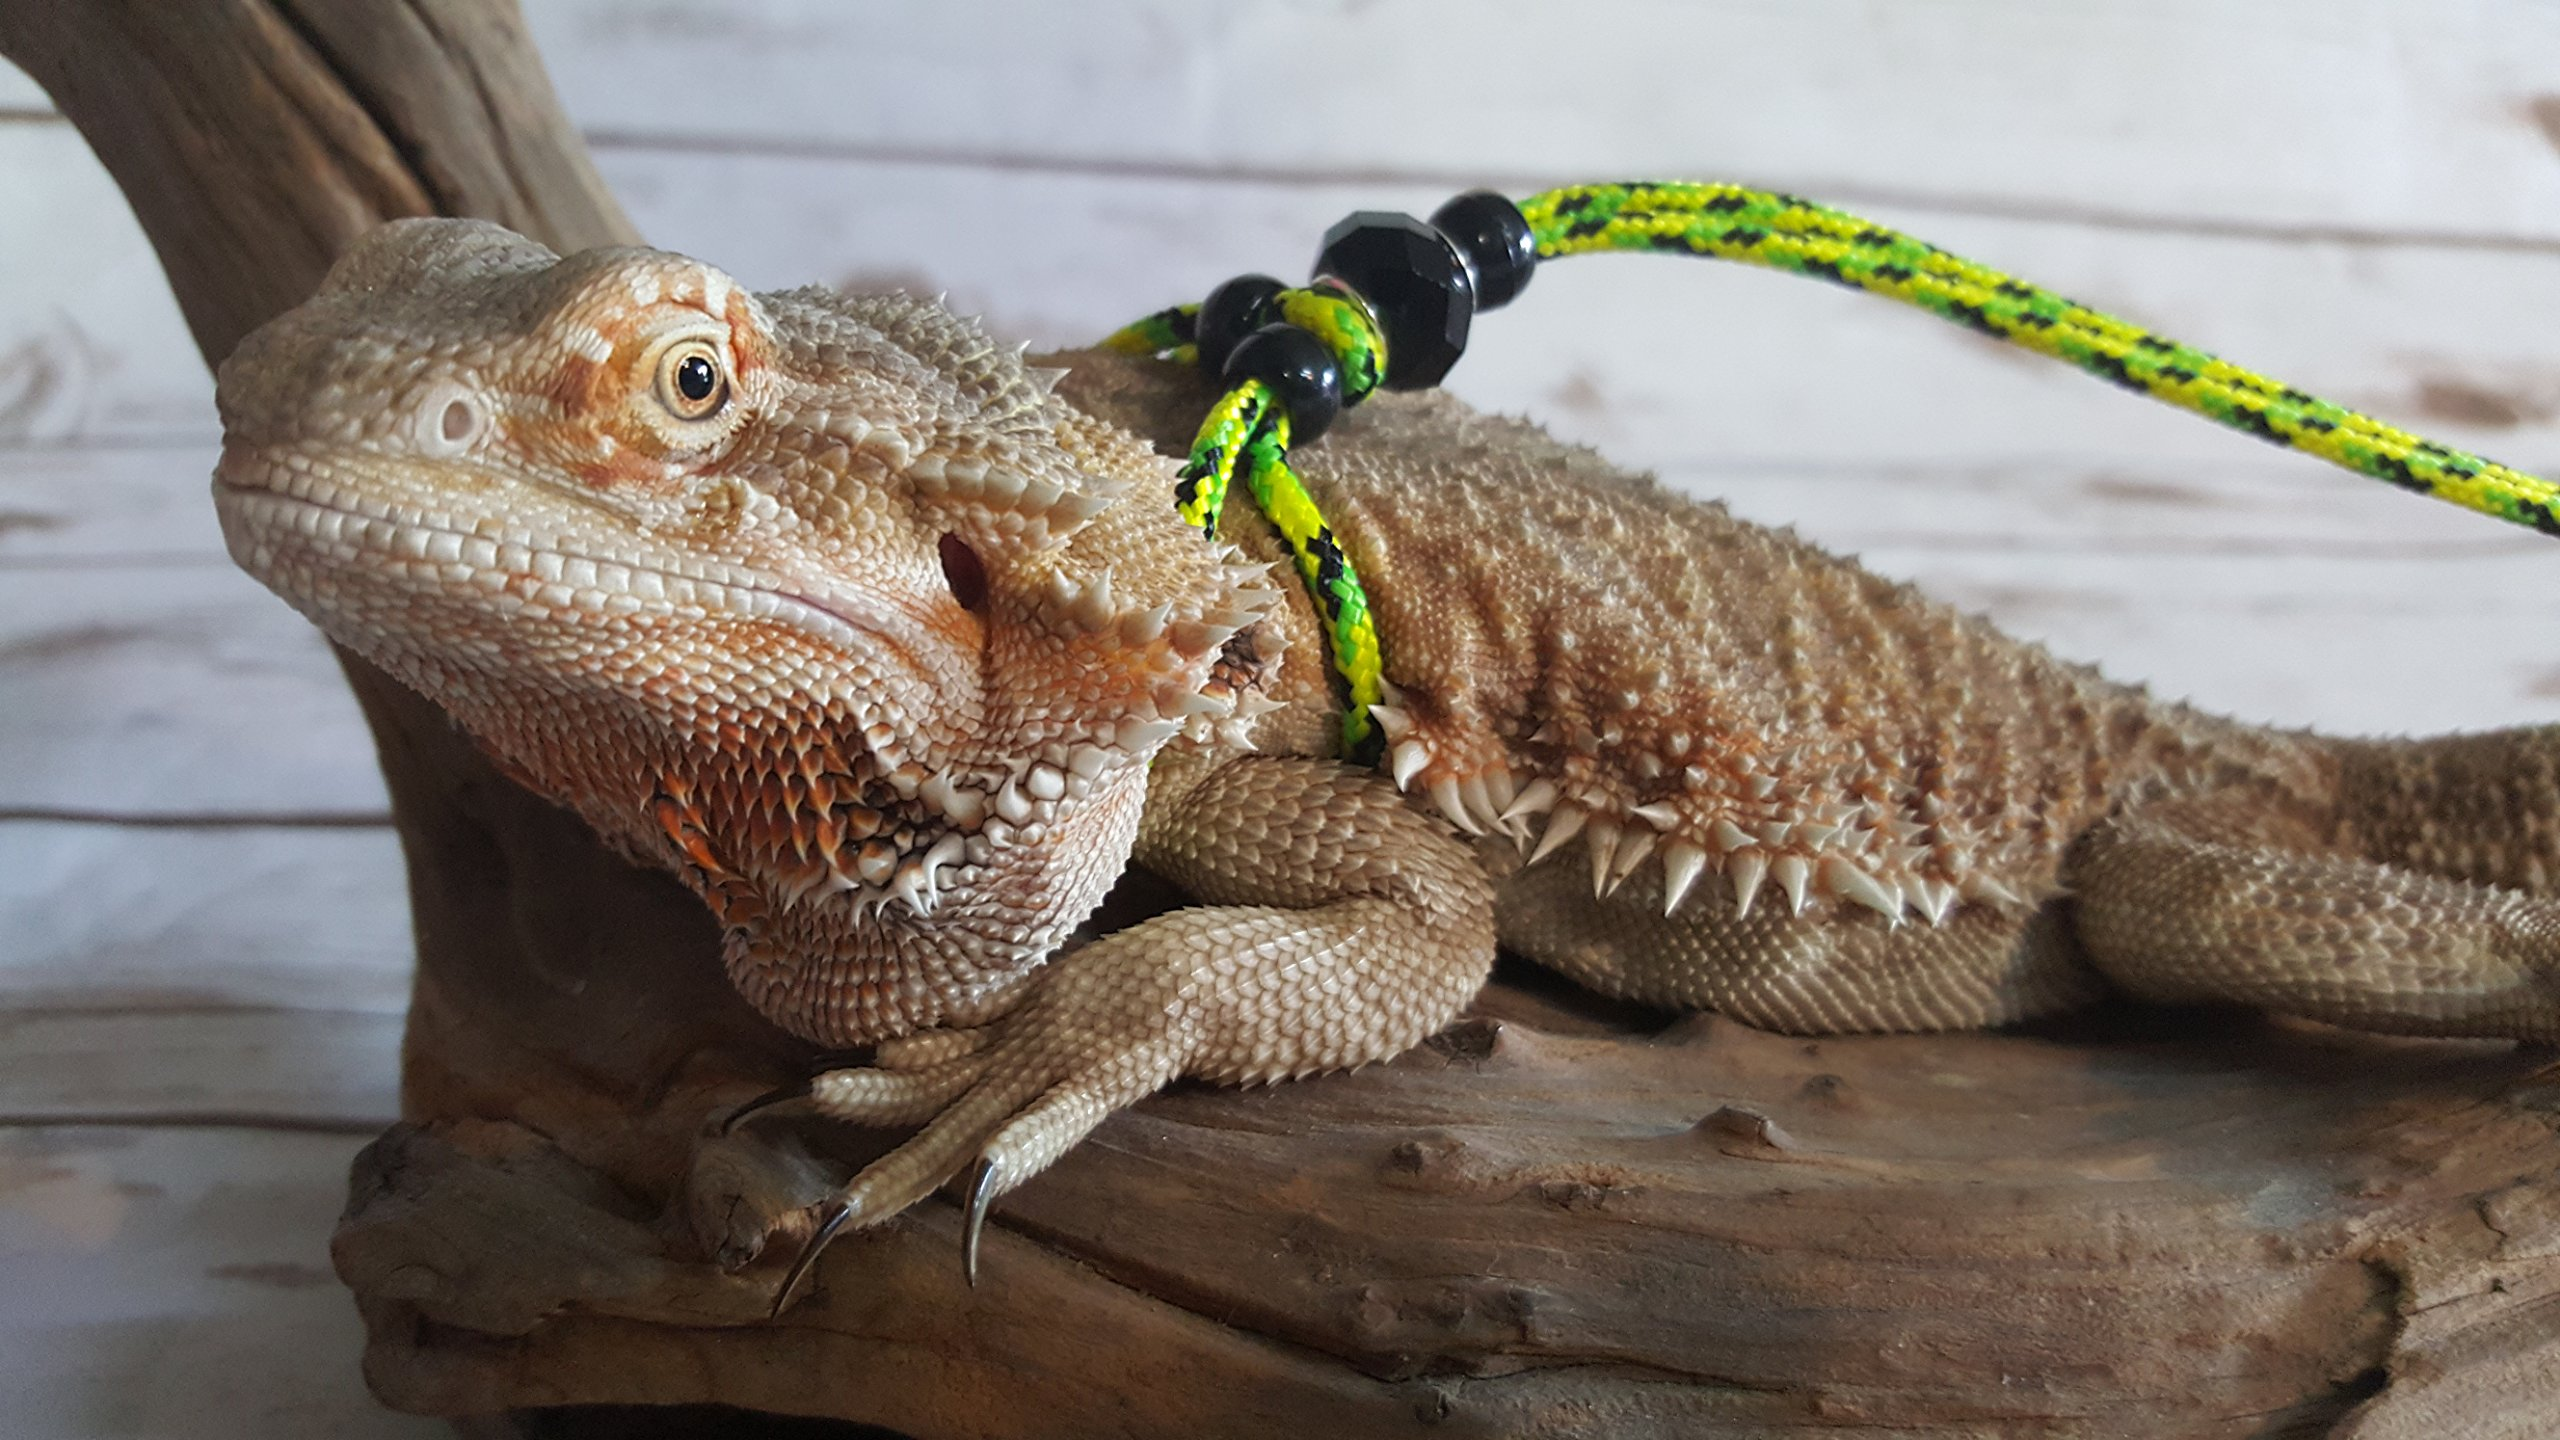 Adjustable Reptile Leash Harness Great for Reptiles or Small Pets - 100% Adjustable Most Sizes (6 Feet)